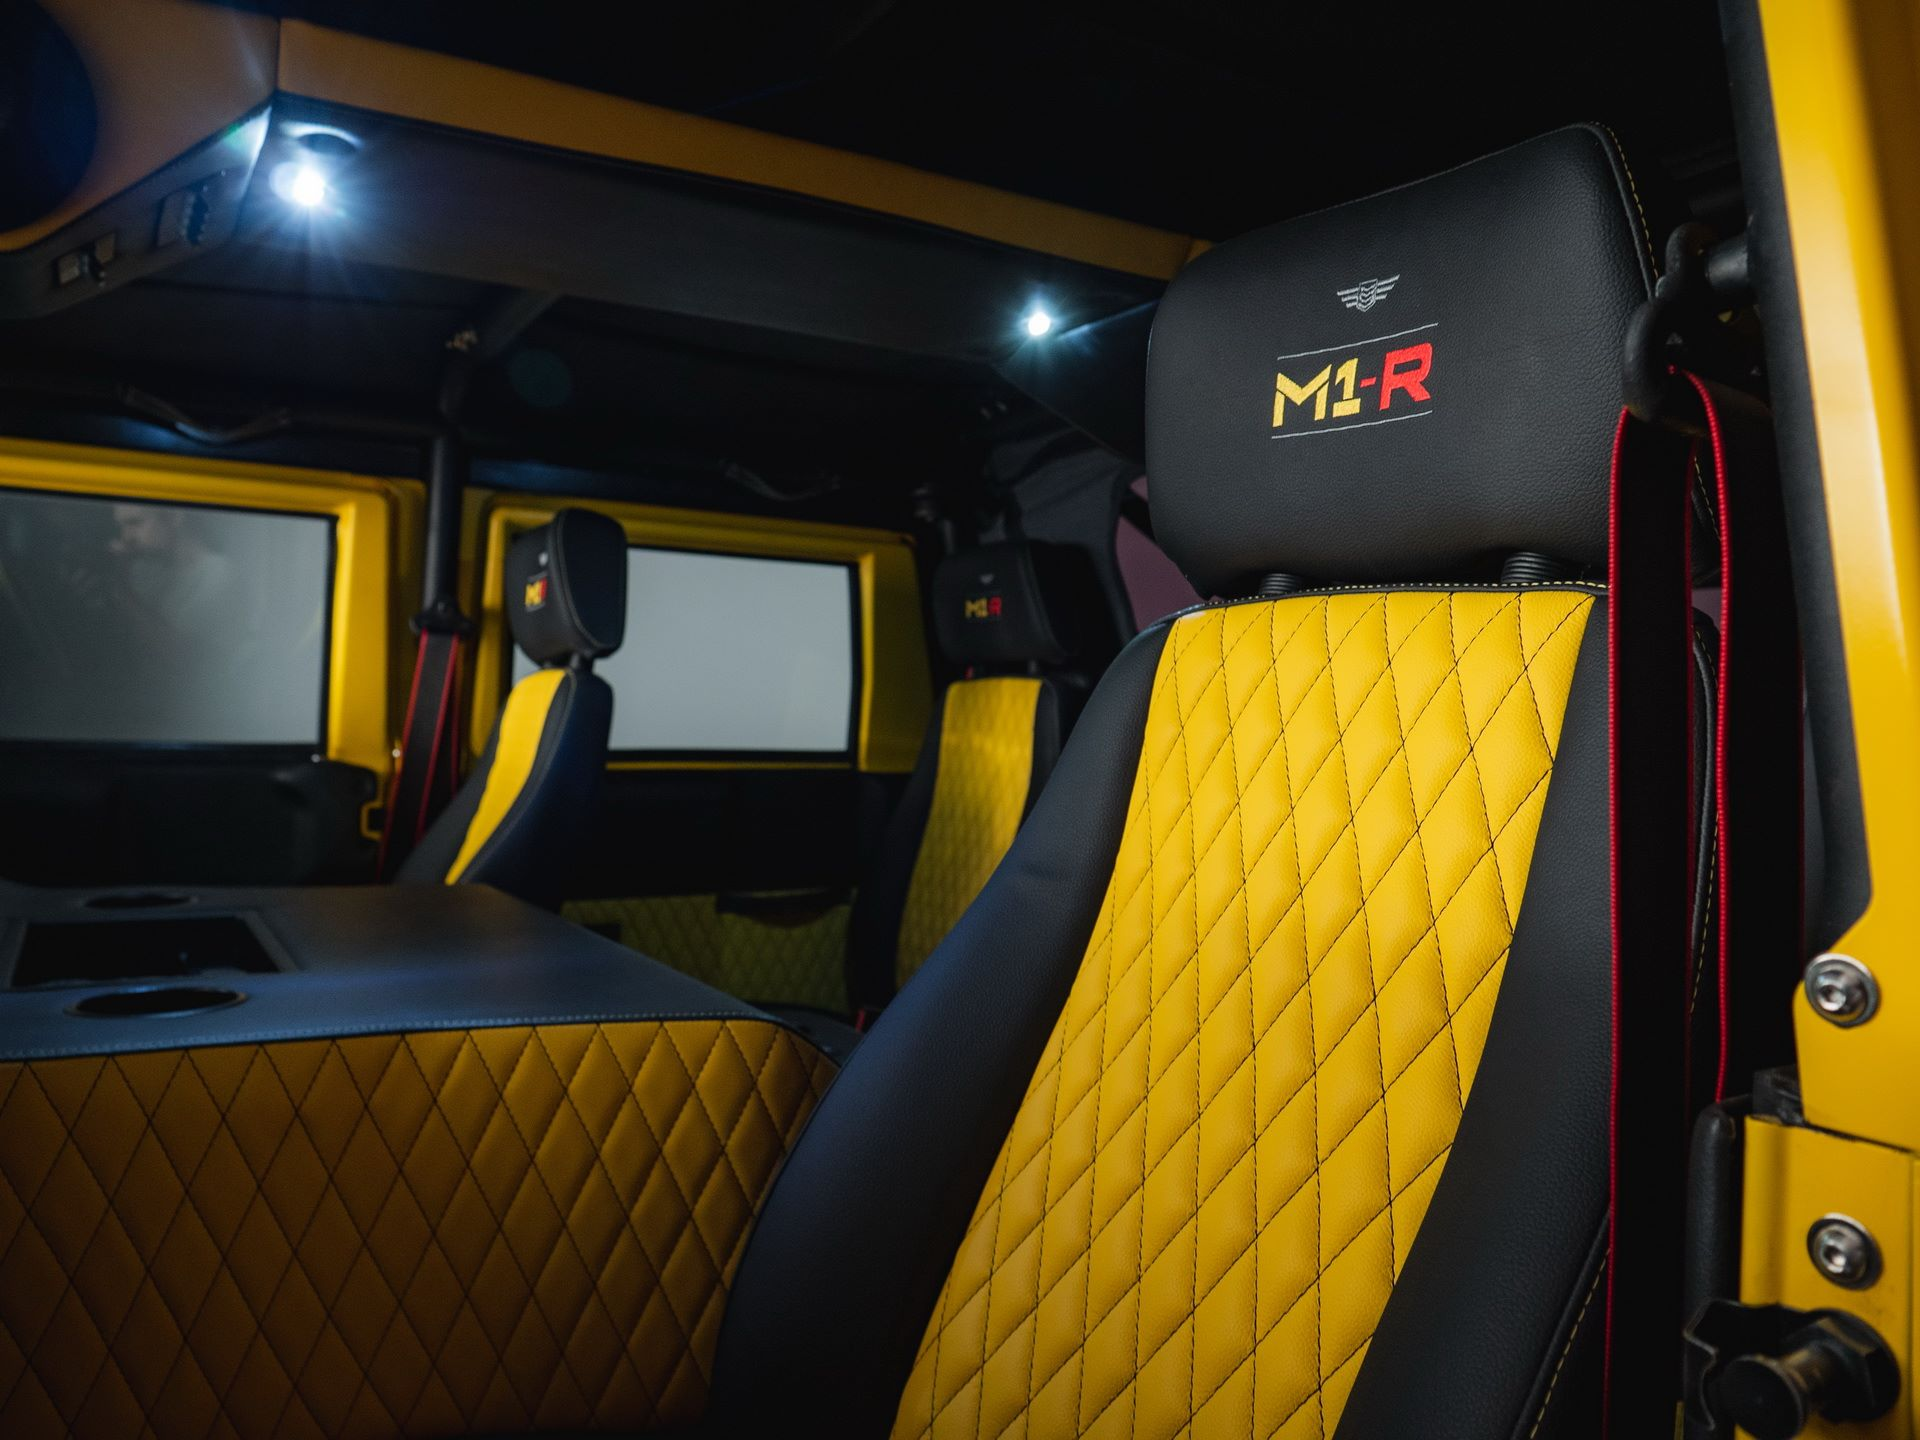 Hummer-M1-R-by-Mil-Spec-43